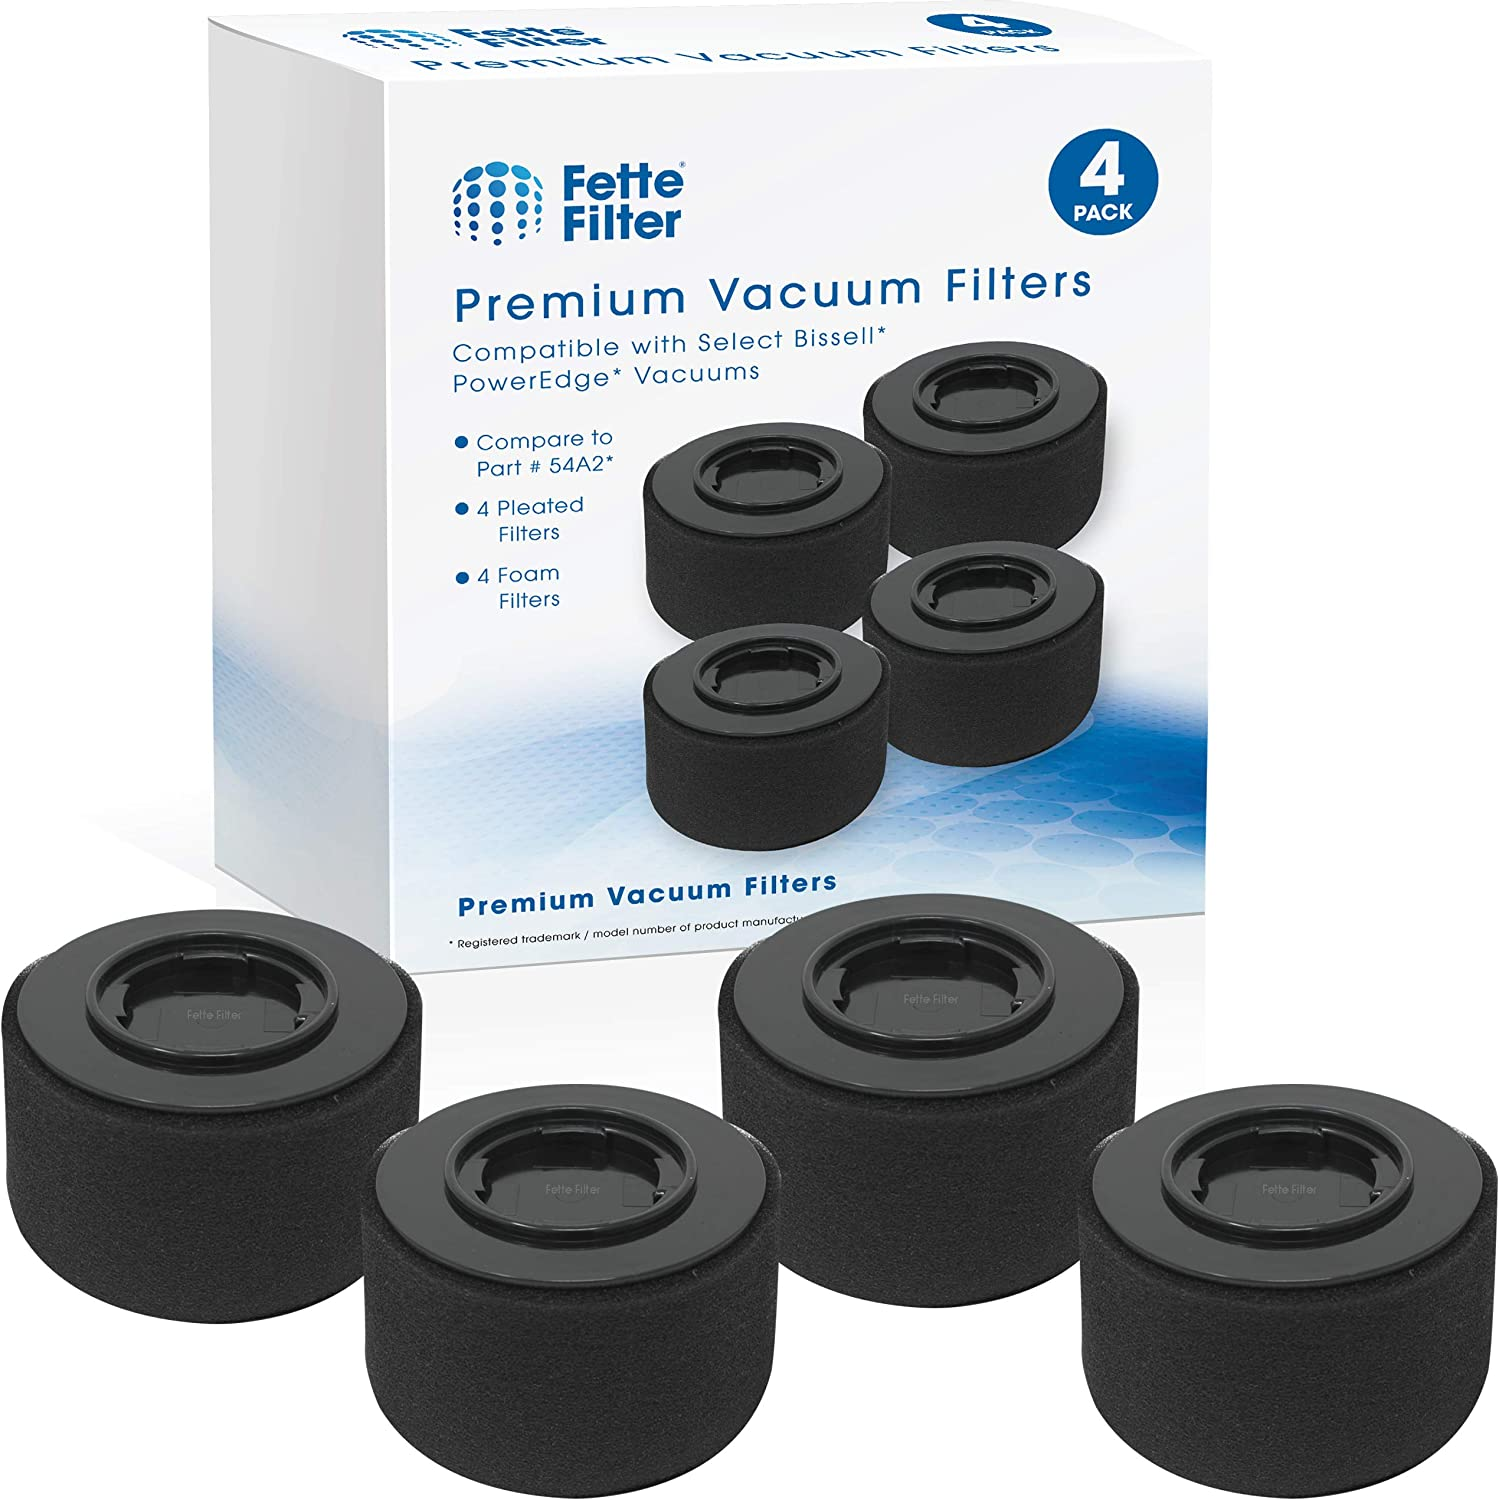 Fette Filter - Replacement Filter Pack Compatible with Bissell 54A2 for PowerEdge Hard Floor Vacuums. (4-Pack)